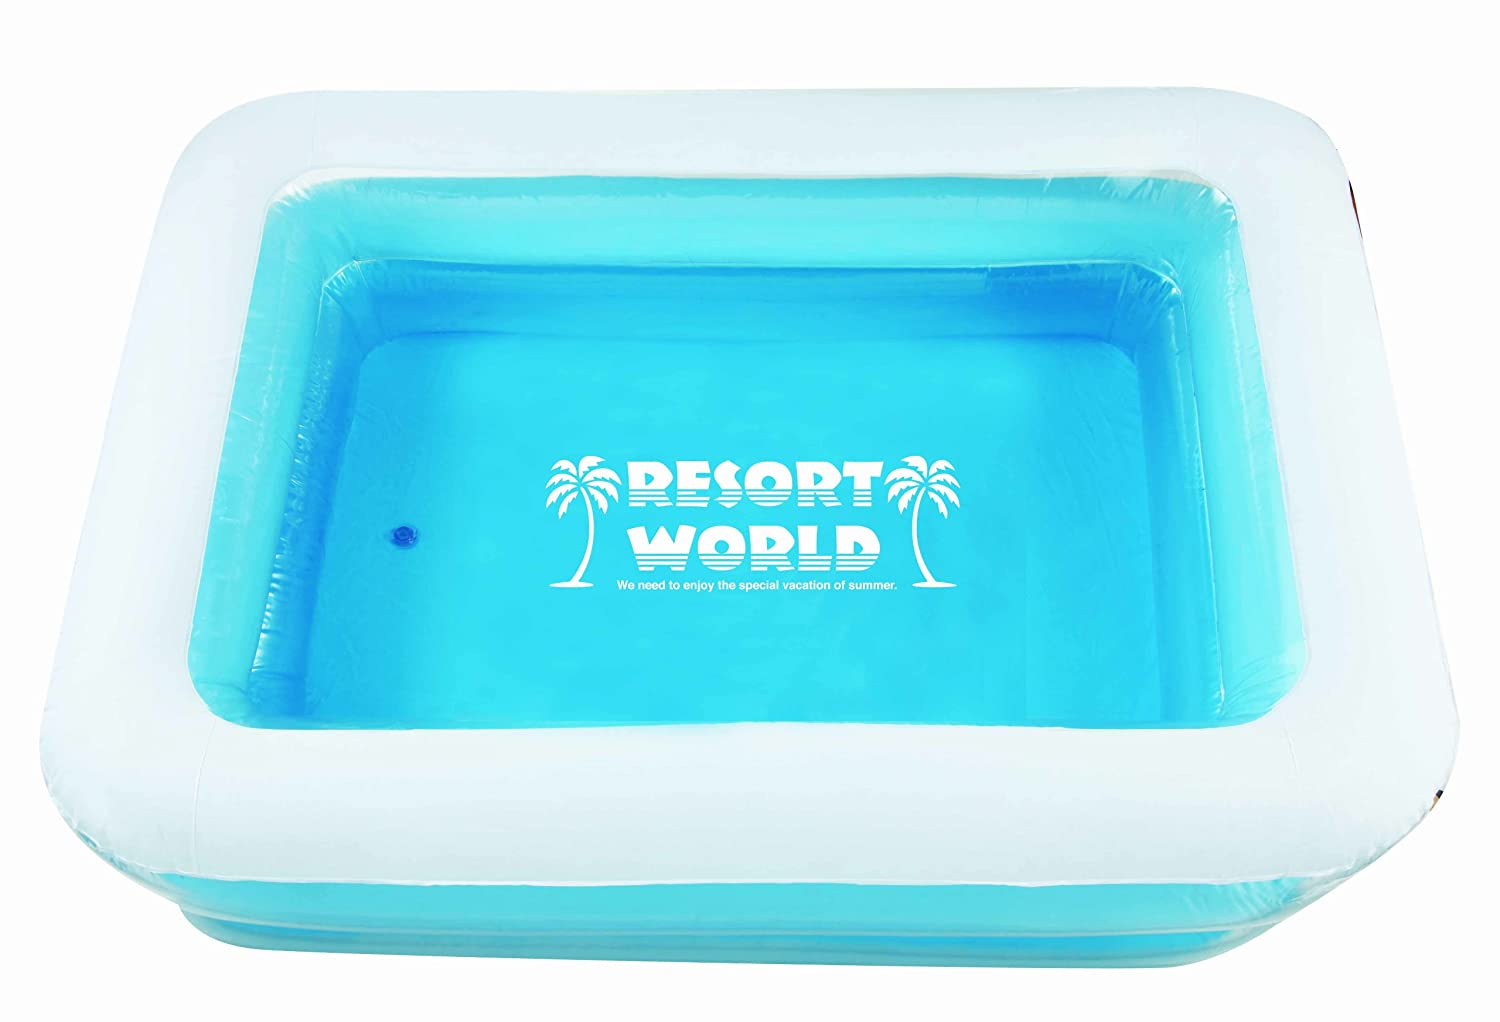 Square pool Big Resorts World 365cm (japan import) günstig kaufen